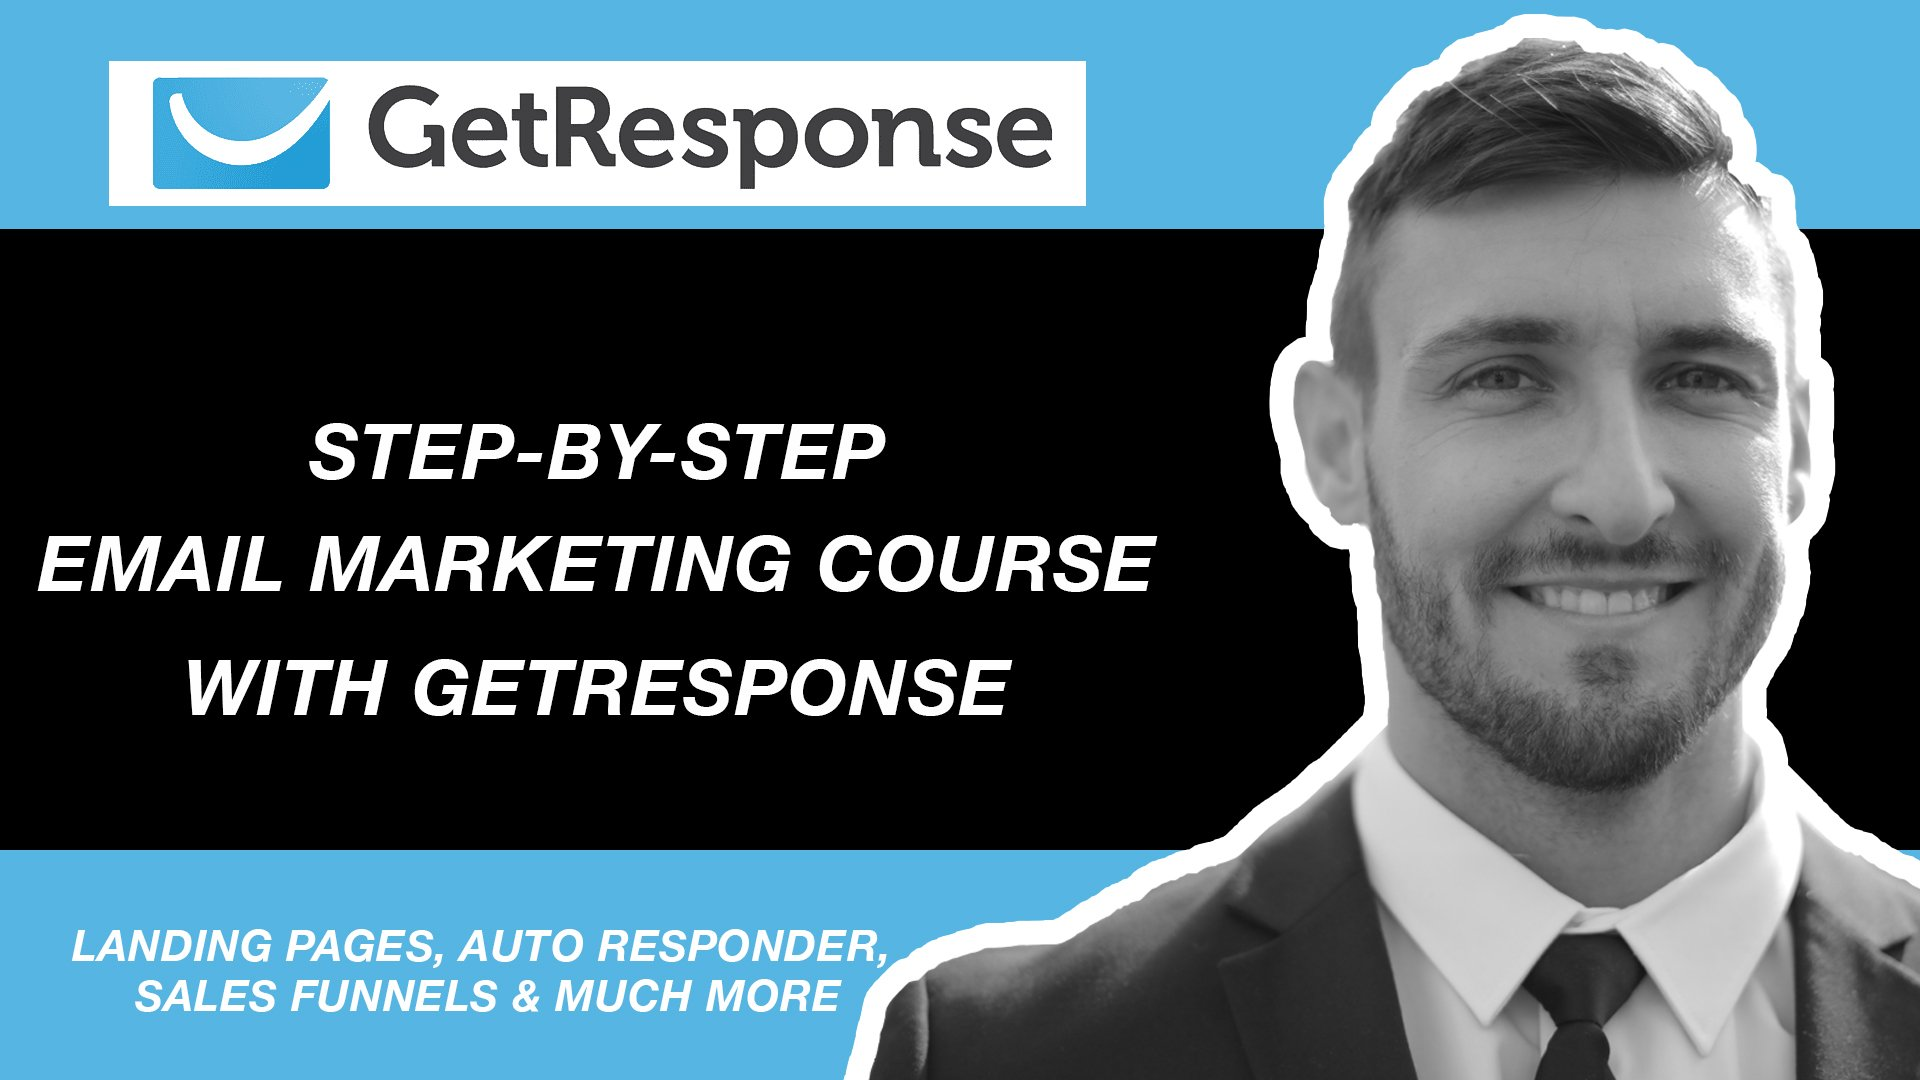 Getting Started With Email Marketing For Online Business & E-Commerce Using Getresponse